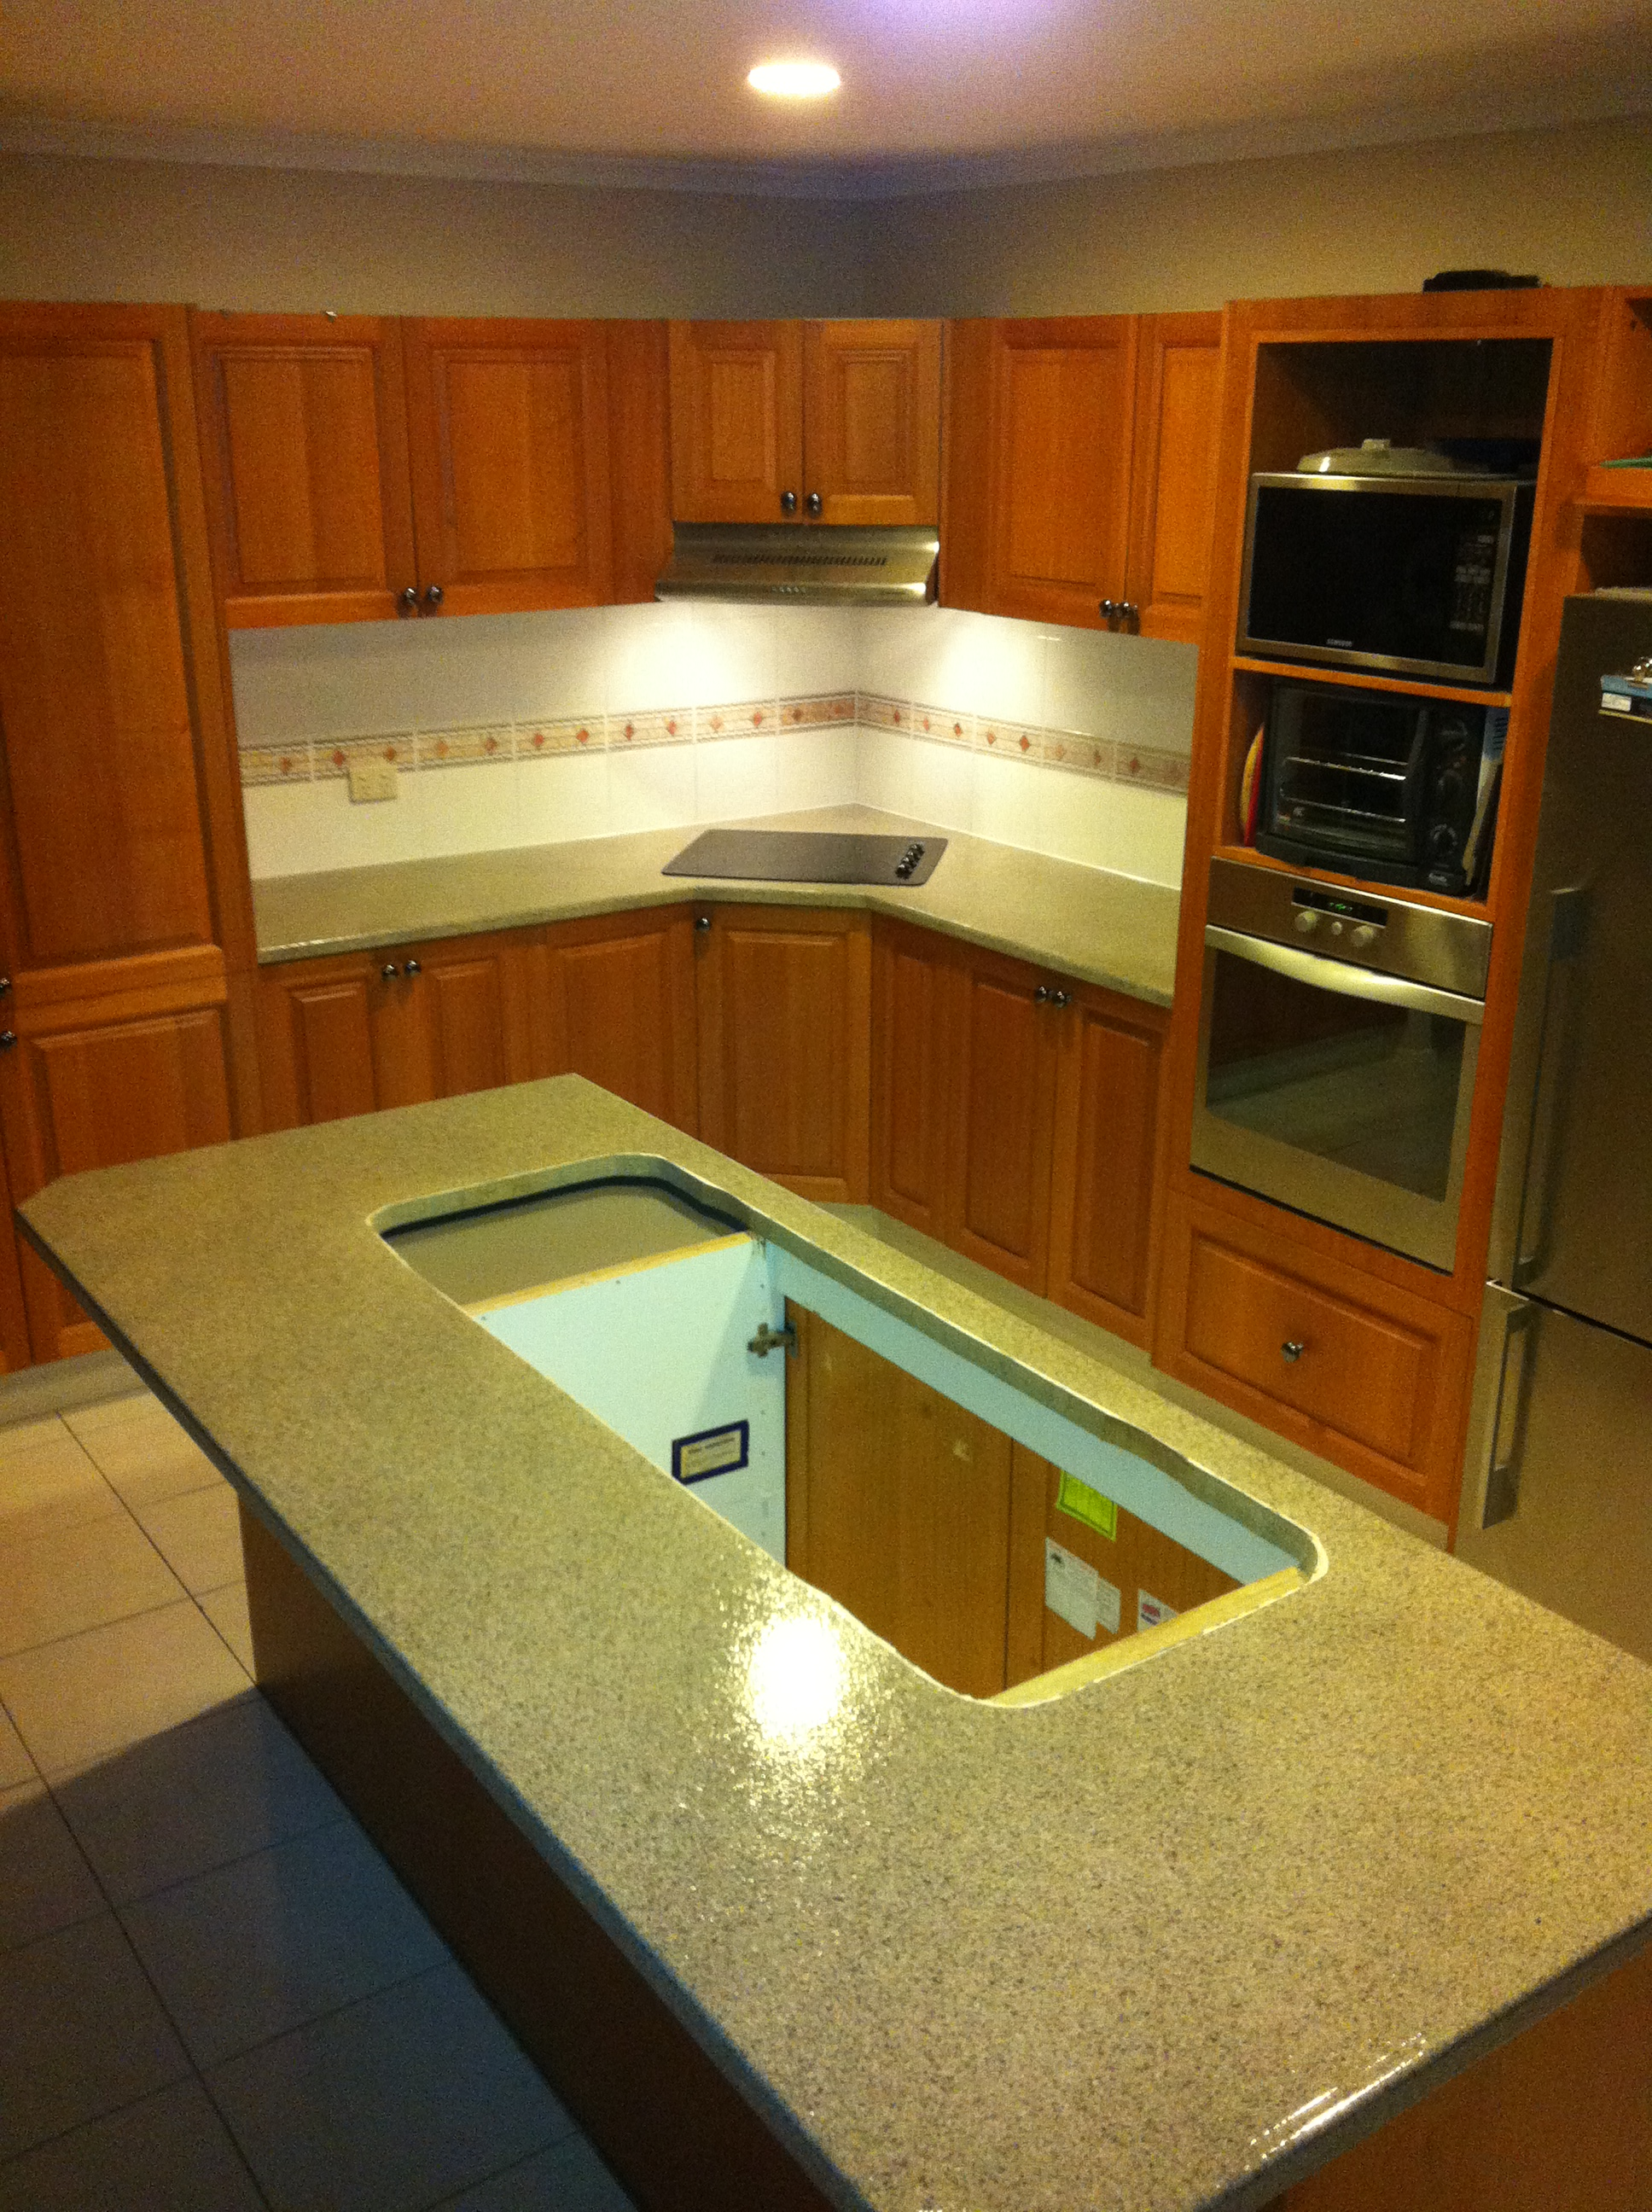 Kitchens Gold Coast: Which Layout Suits You?